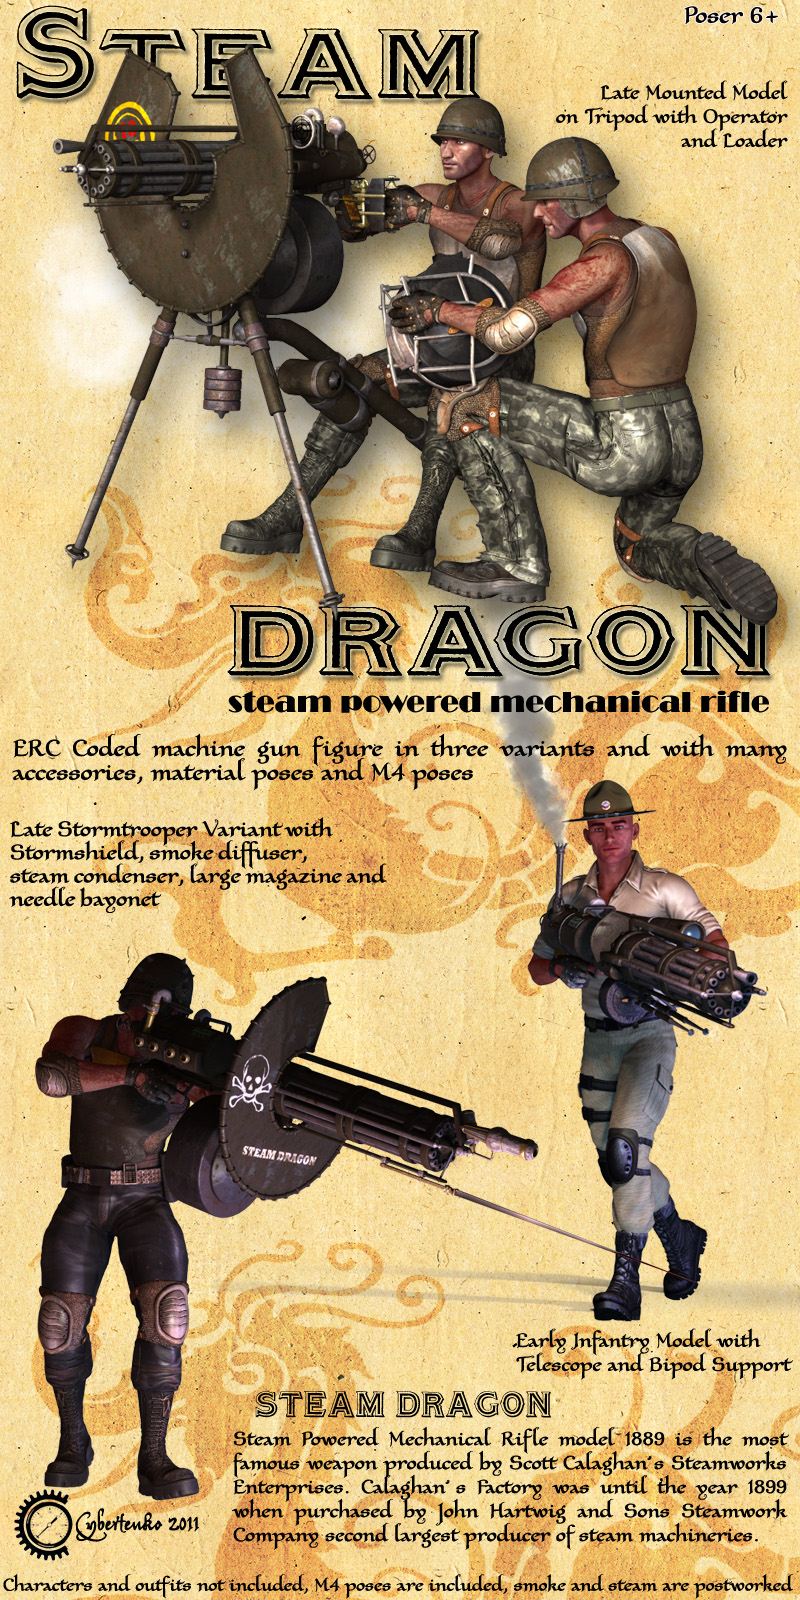 Steam Dragon